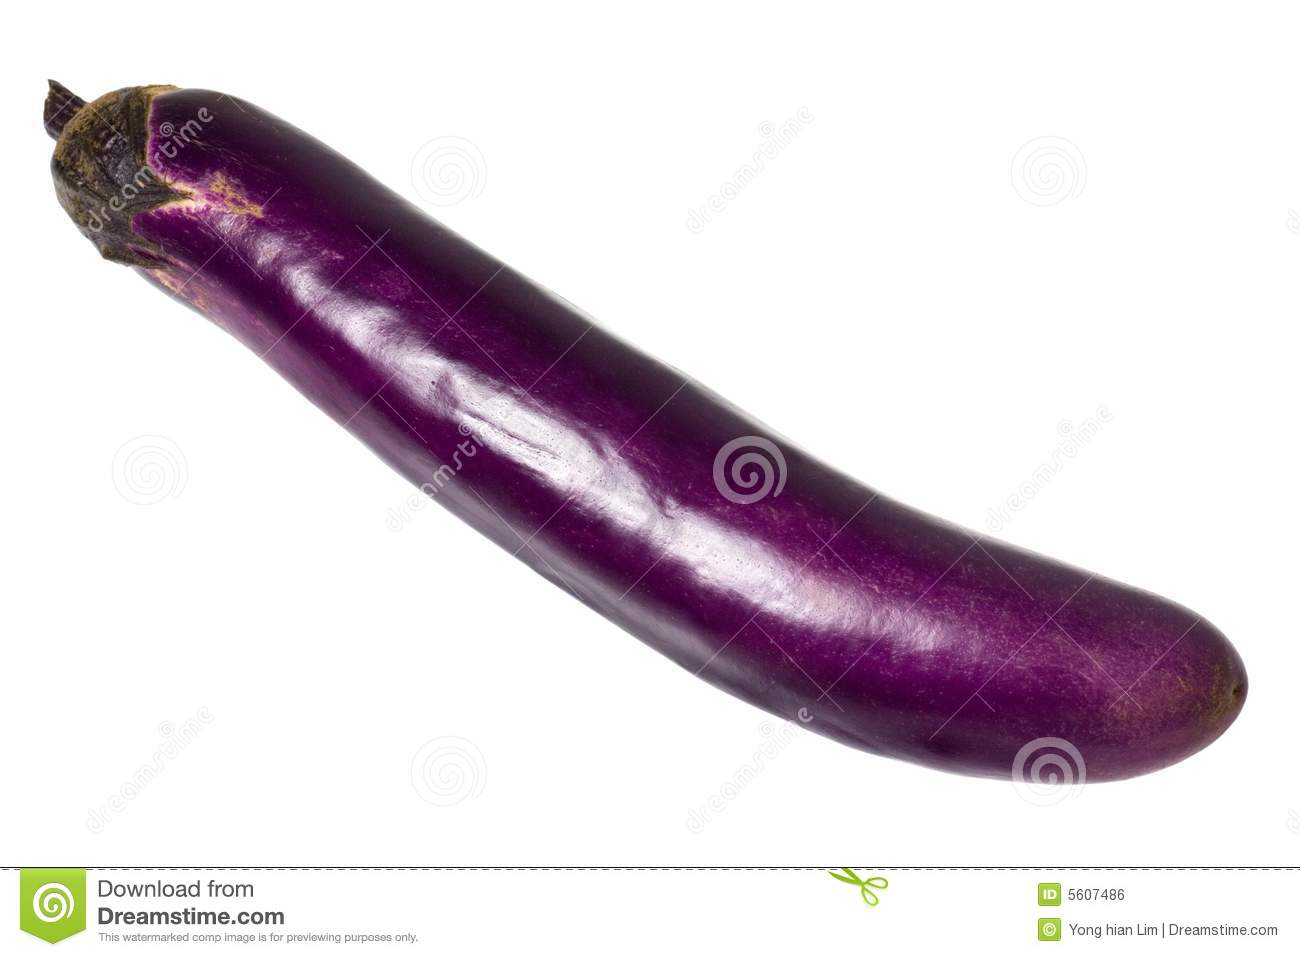 Https Www Dreamstime Com Royalty Free Stock Image Long Slender Brinjal Image5607486